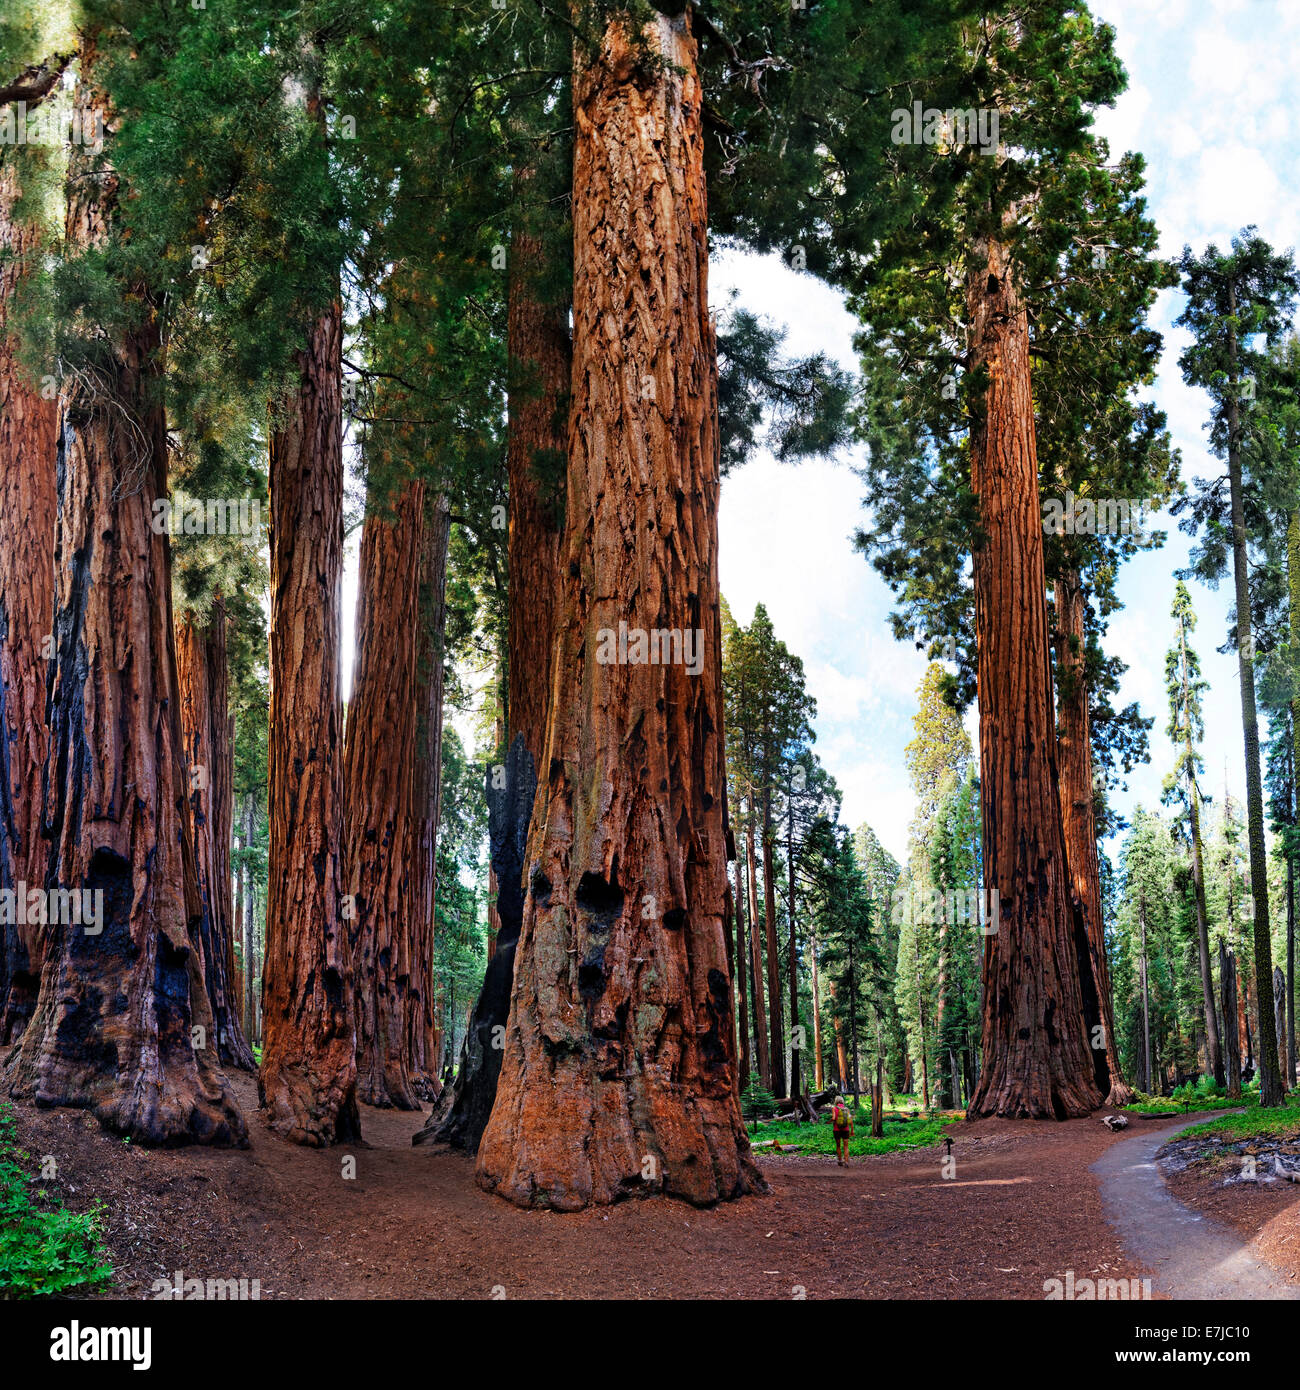 Giant sequoia (Sequoiadendron giganteum), in front a visitor, Giant Forest, Sequoia National Park, California, United - Stock Image